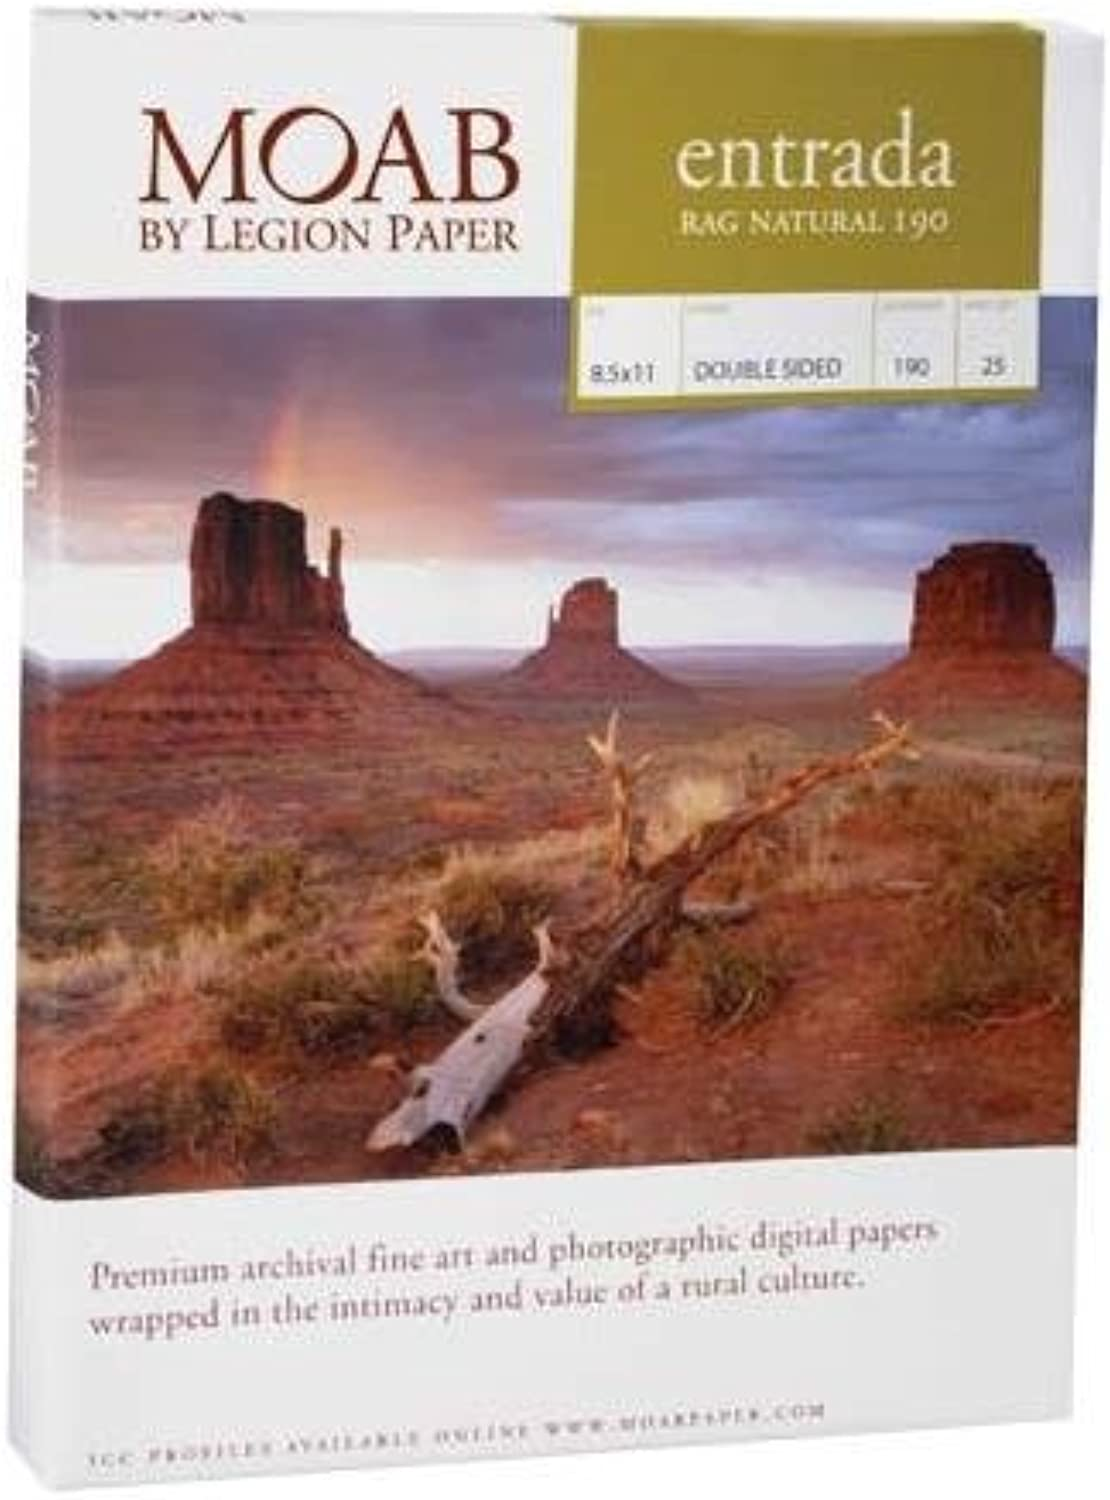 Moab Entrada Rag Natural 190 8.5x11 double sided by Moab B000UMX7S0  | Bunt,